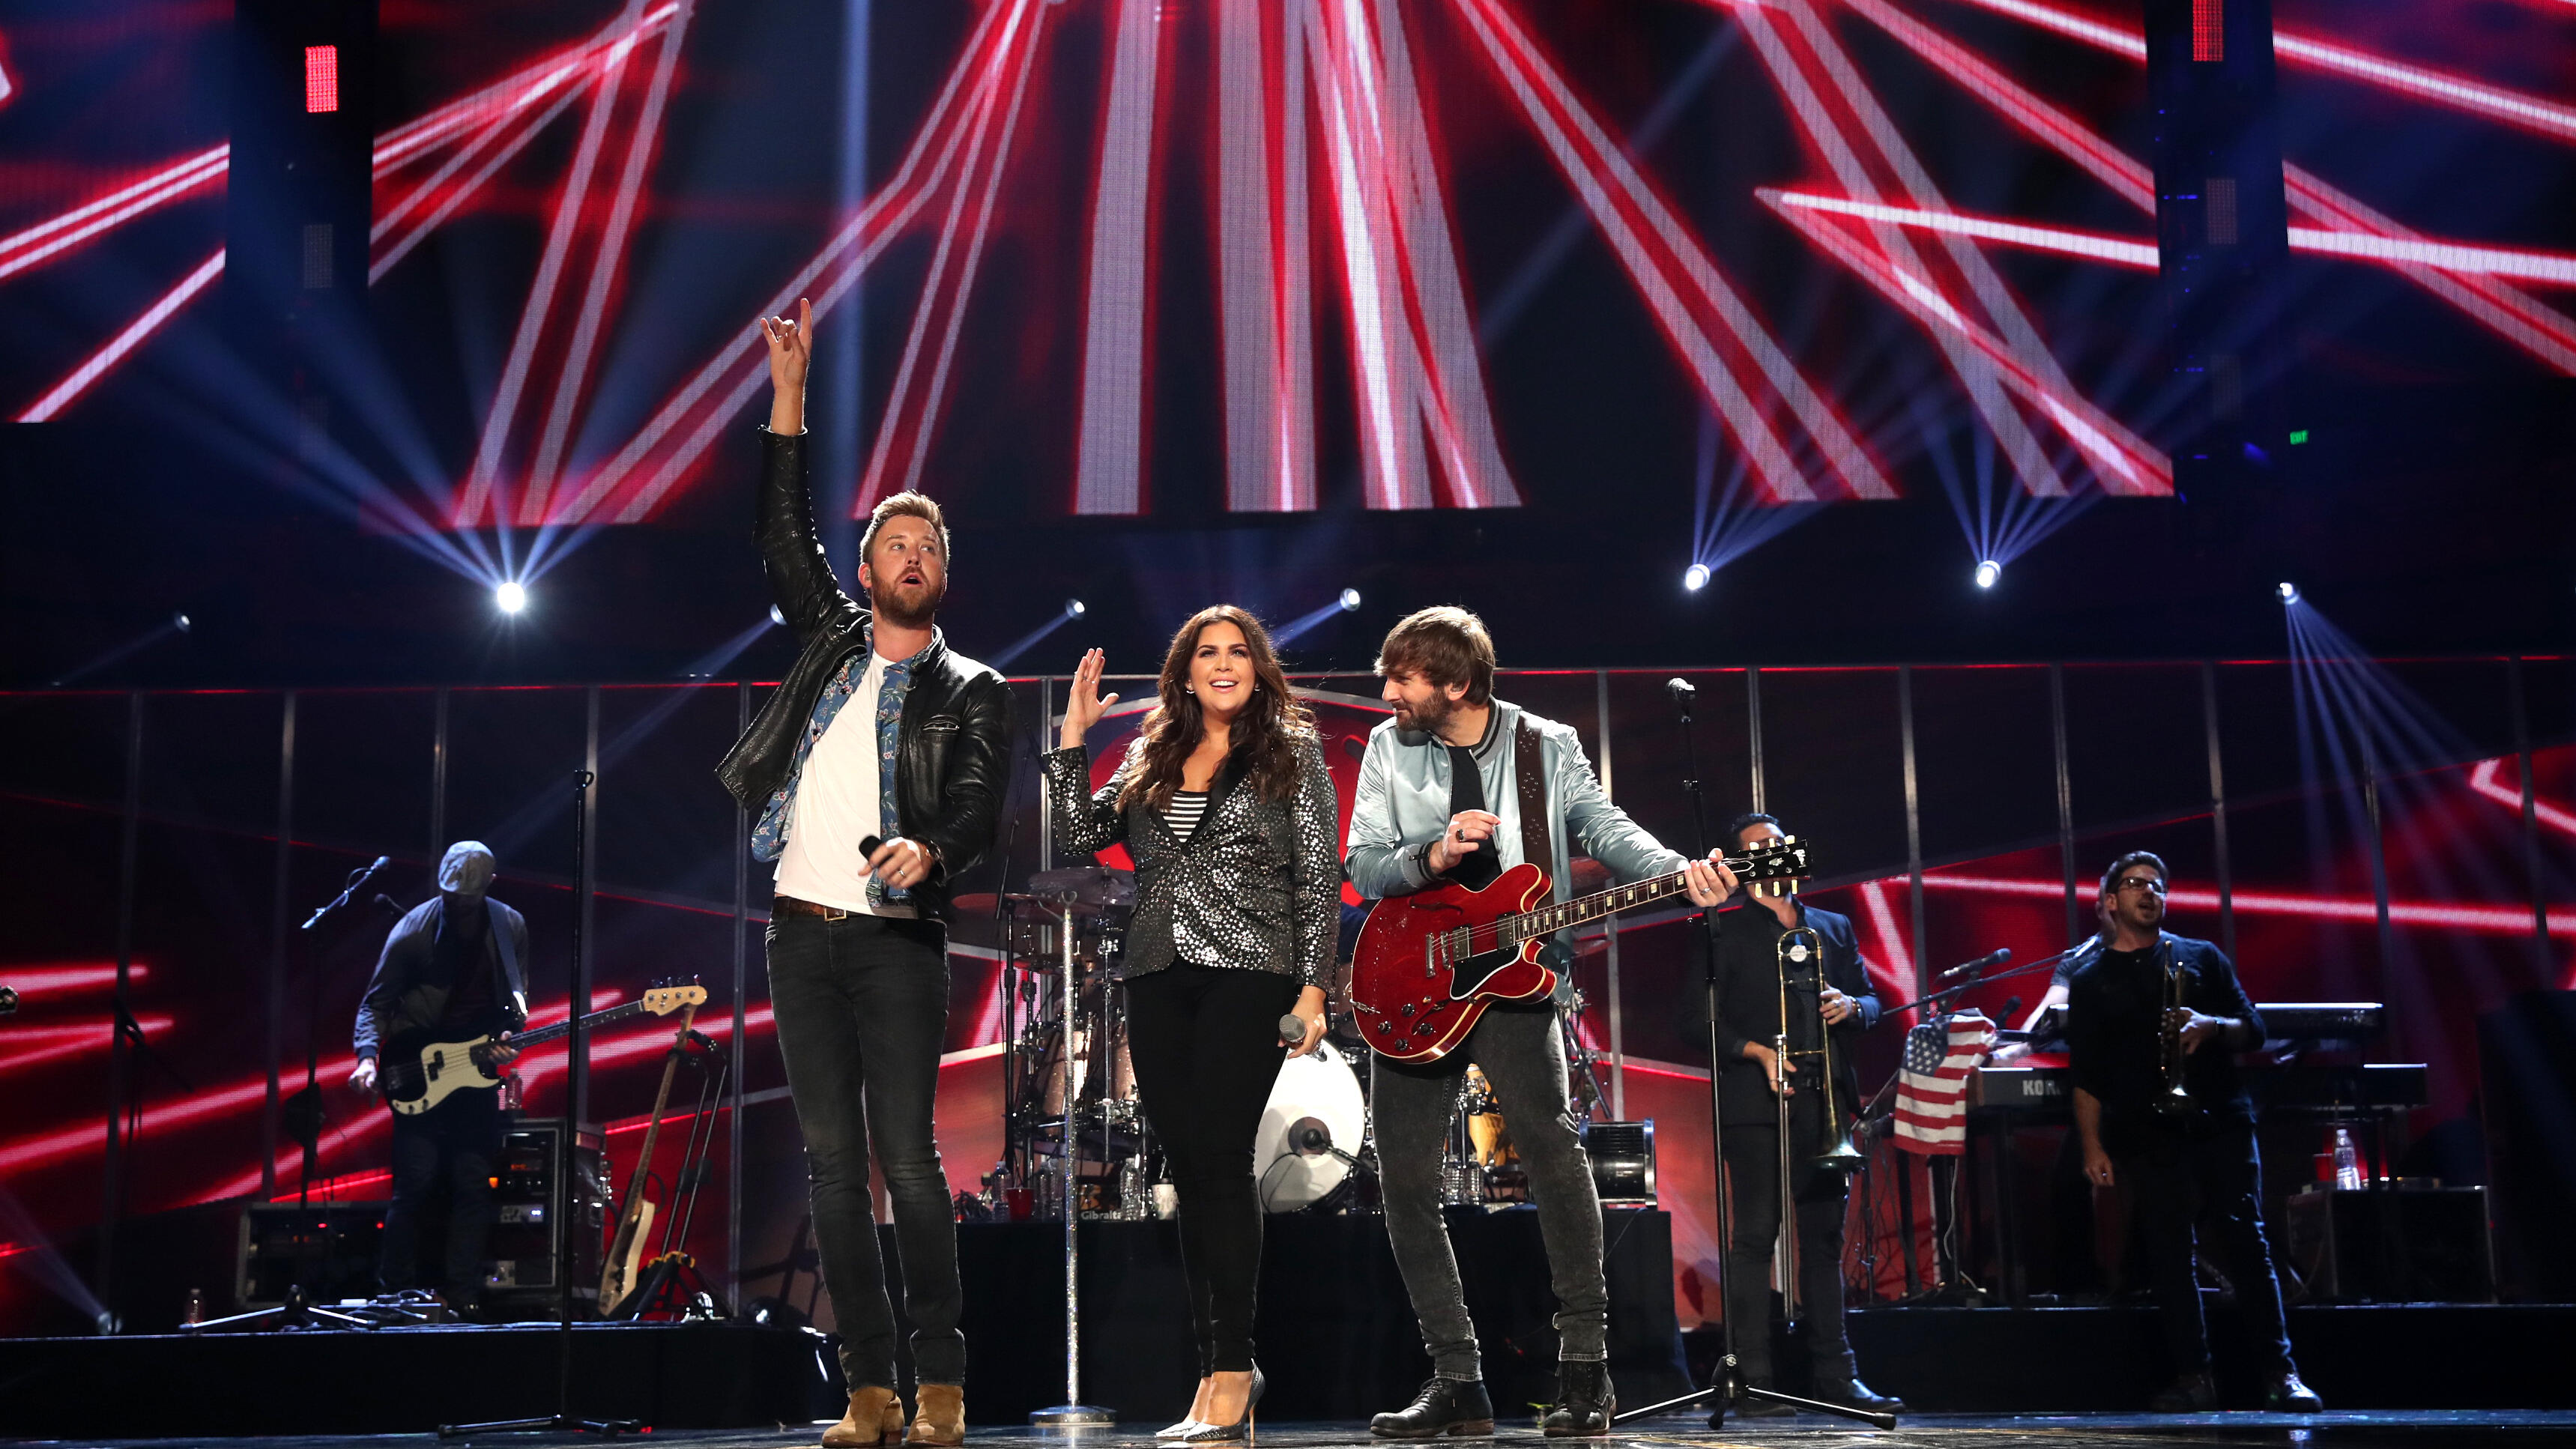 AUSTIN, TX - MAY 06:  (L-R) Singers Charles Kelley, Hillary Scott, and Dave Haywood of Lady Antebellum perform onstage during the 2017 iHeartCountry Festival, A Music Experience by AT&T at The Frank Erwin Center on May 6, 2017 in Austin, Texas.  (Photo by